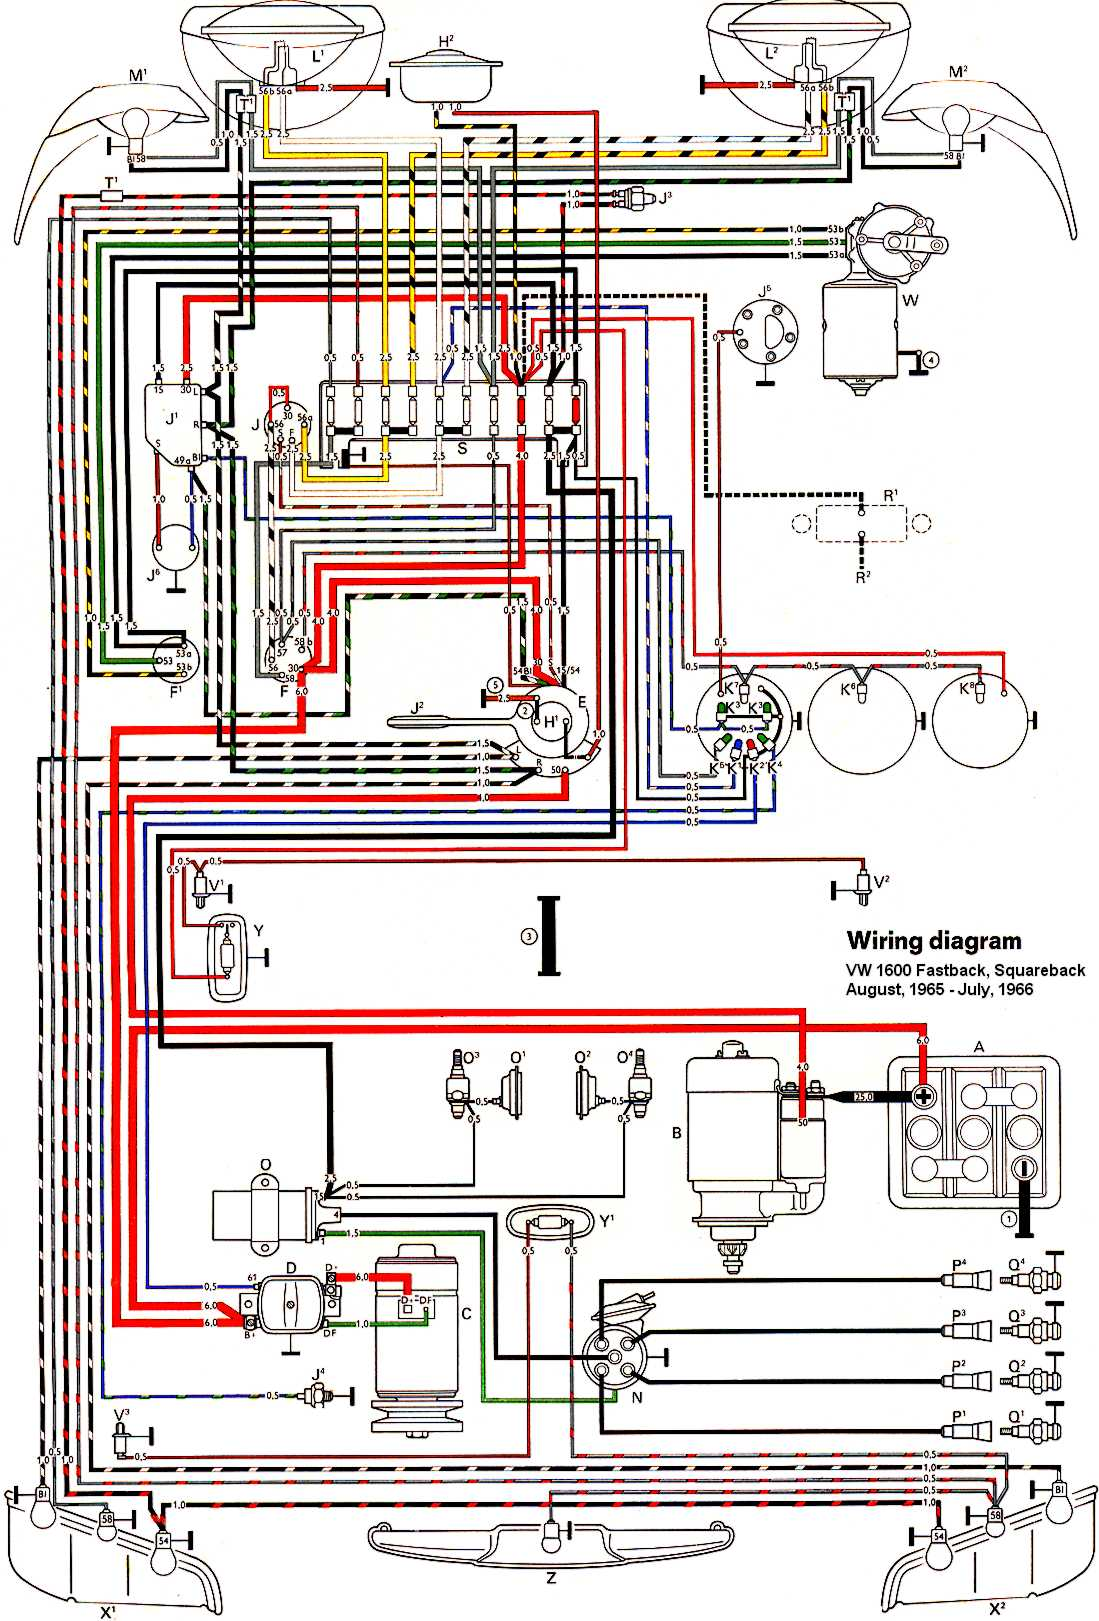 2003 vw new beetle wiring diagram 2003 vw new beetle fuse box diagram #3